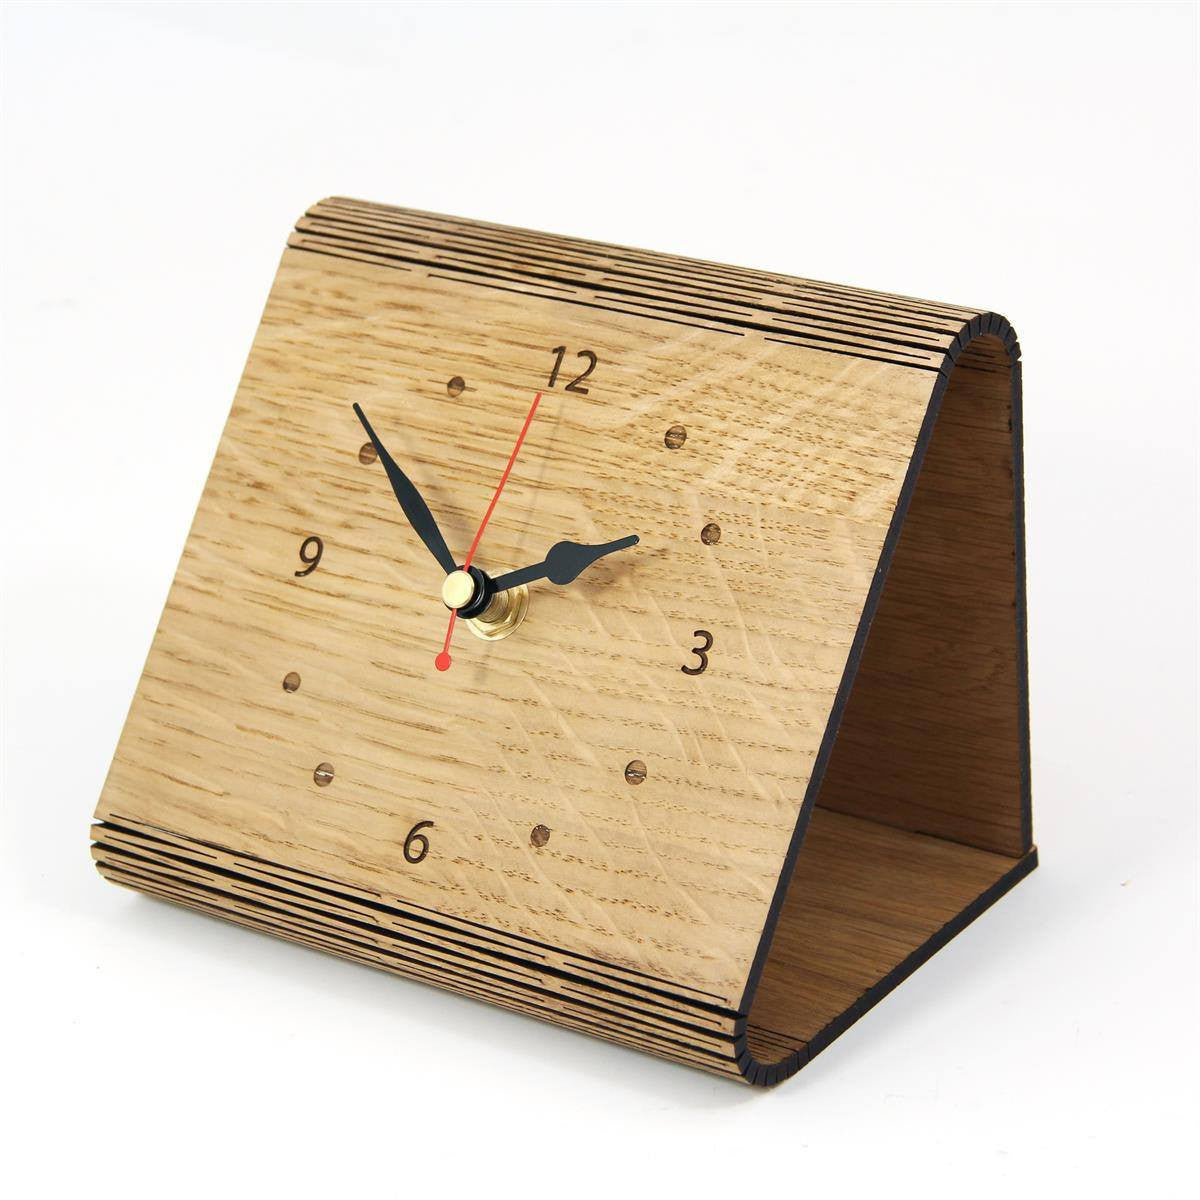 Image of Living Hinge Wooden Clock in an Oak Finish with Personalised Message